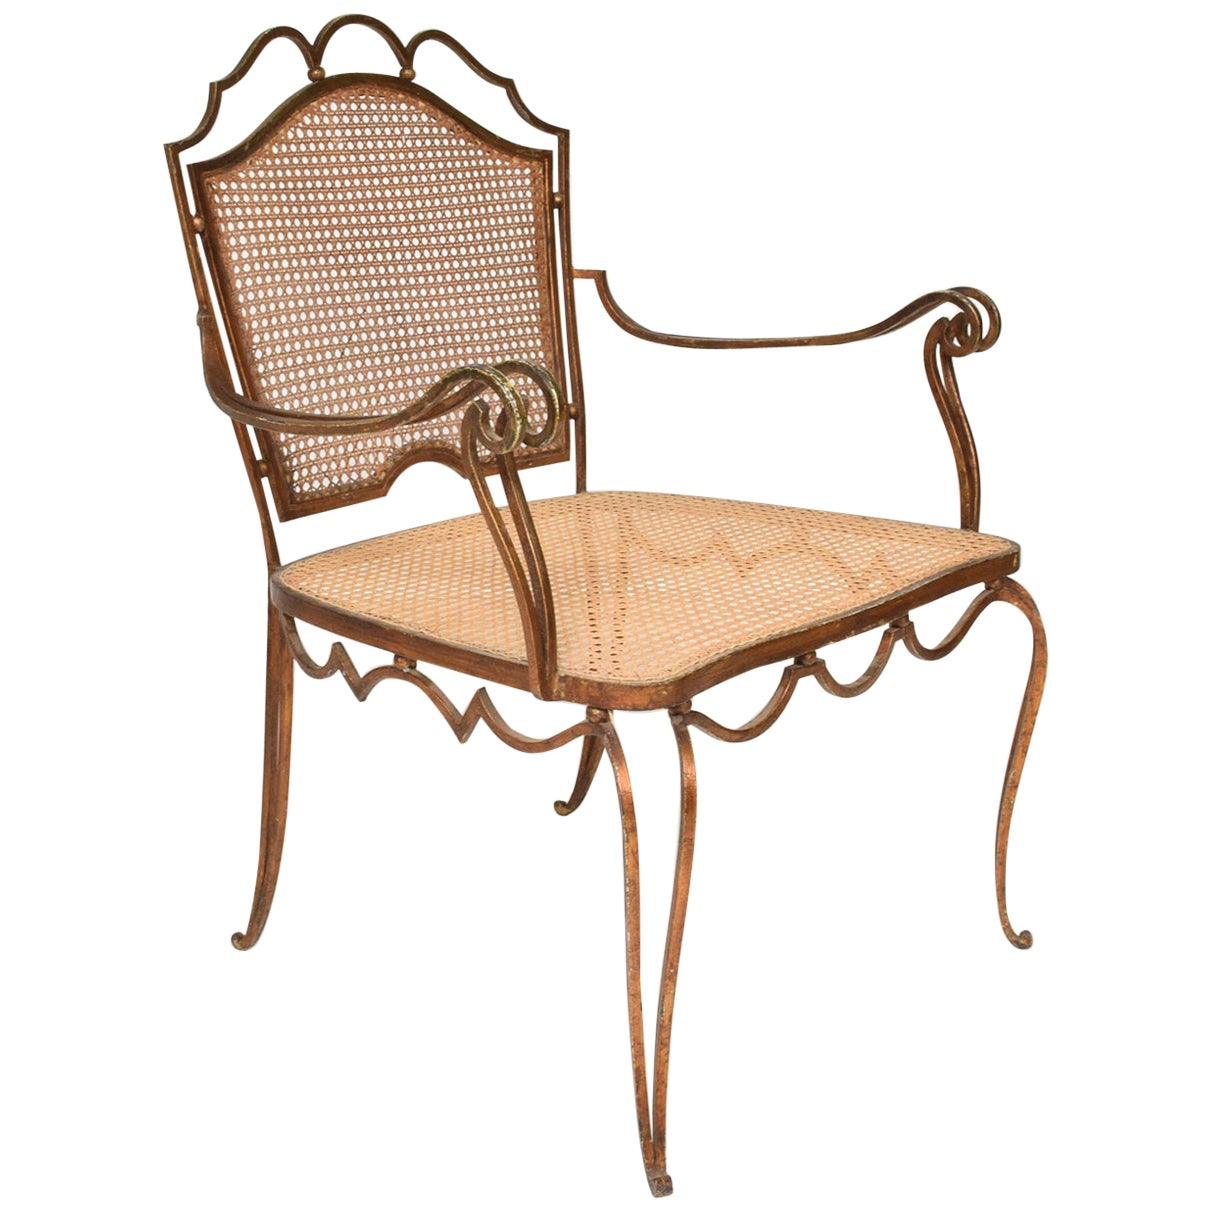 Fanciful Regency Armchair by Arturo Pani in Forged Gilt Iron & Woven Cane 1940s